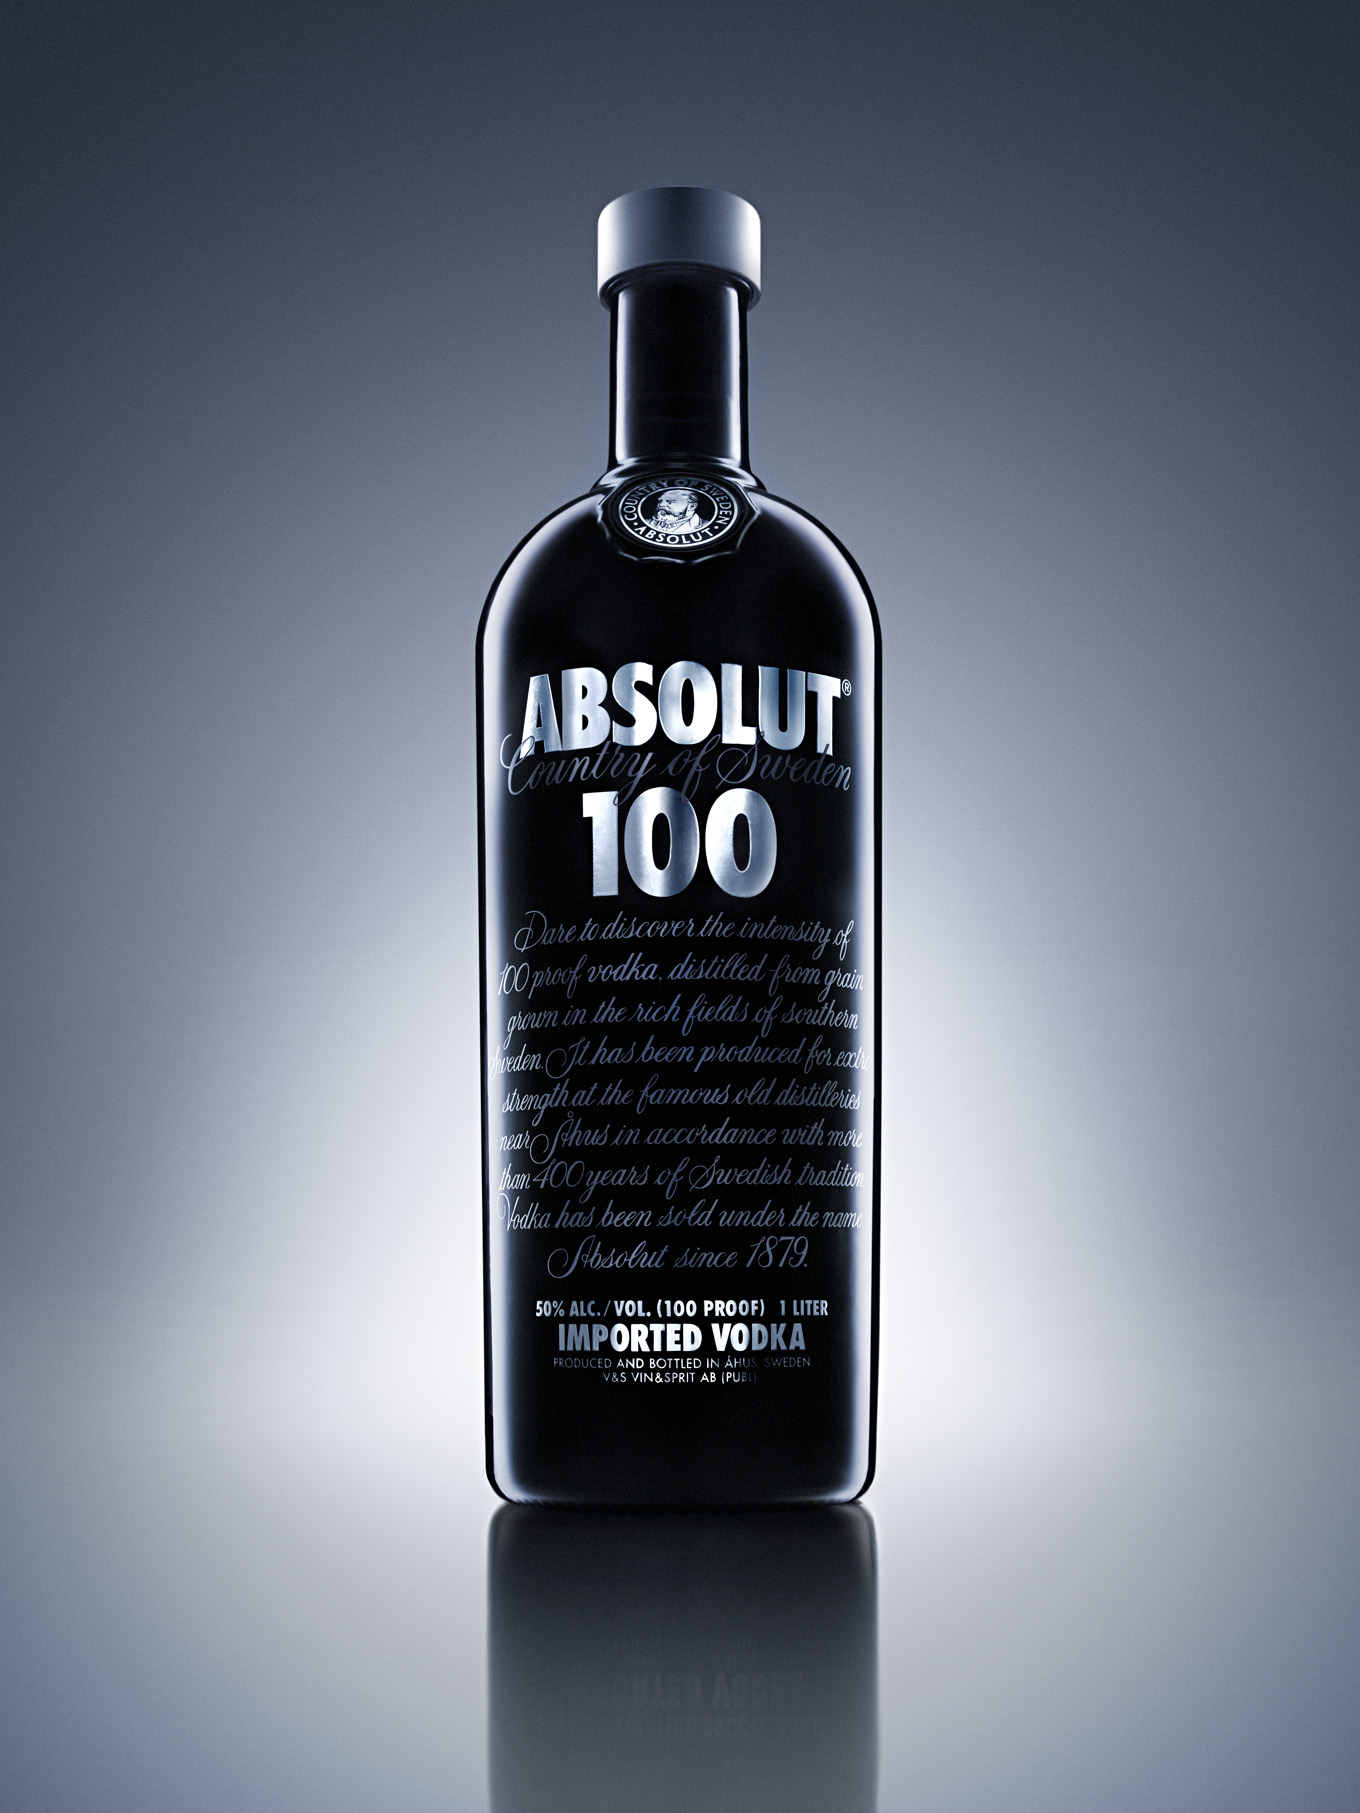 Amazing Absolut Pictures & Backgrounds